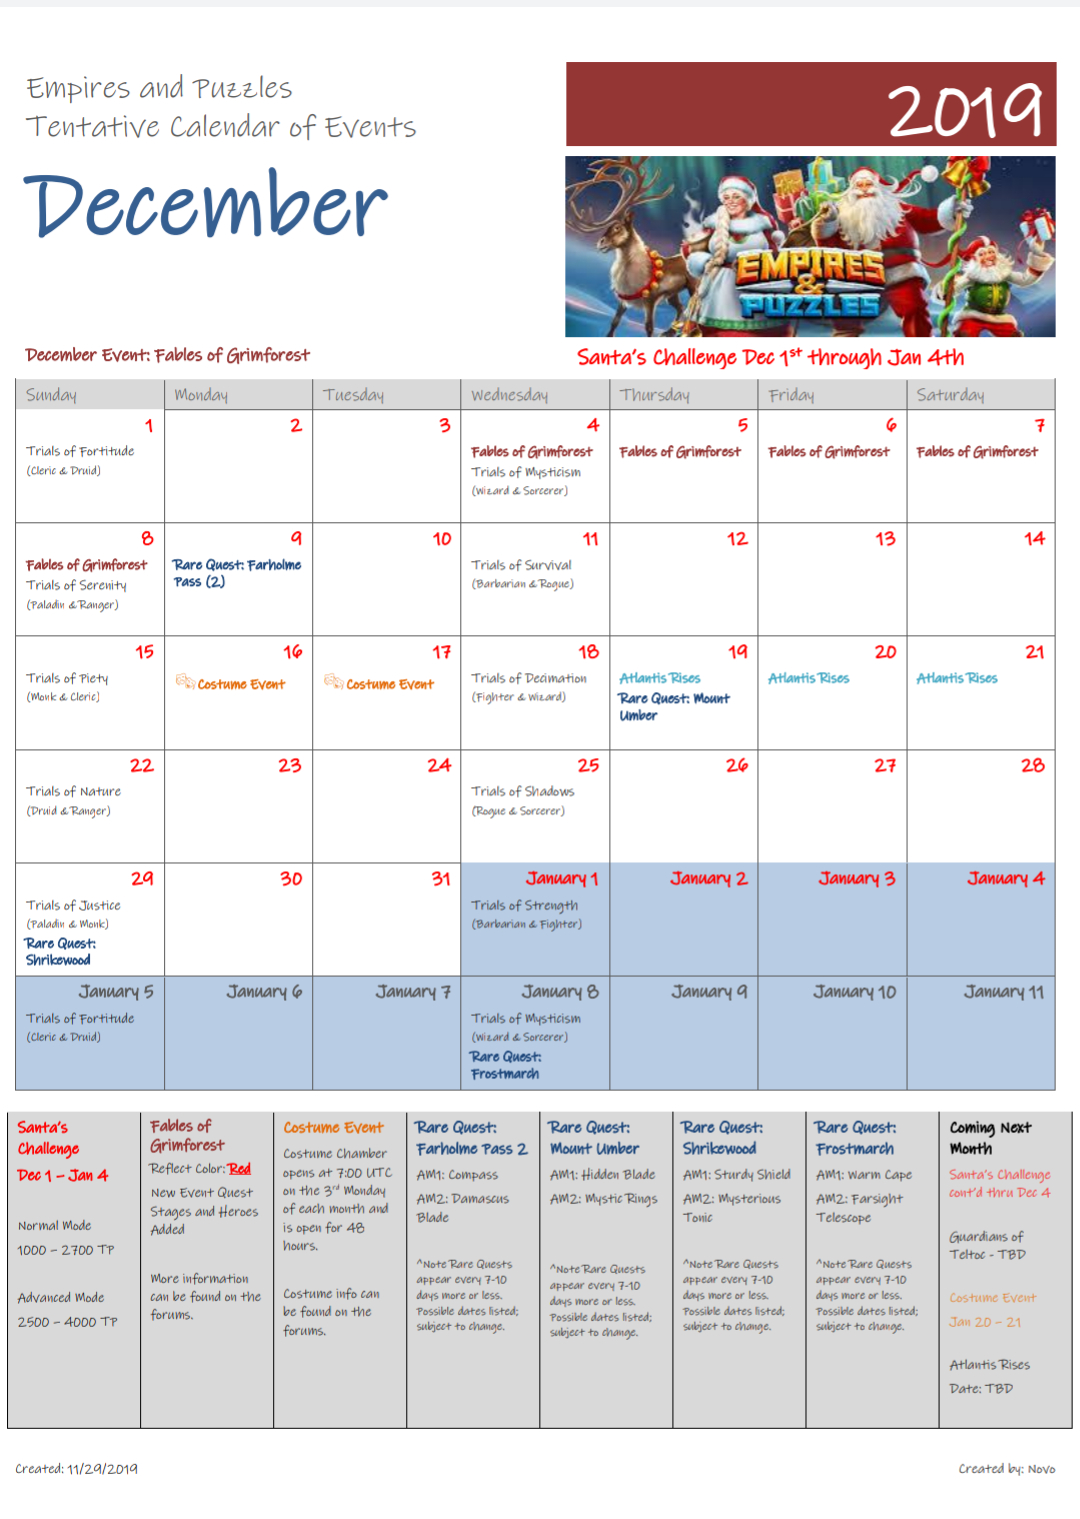 December 2019 Calendar Of Events : Empiresandpuzzles in Empires And Puzzles Events 2020